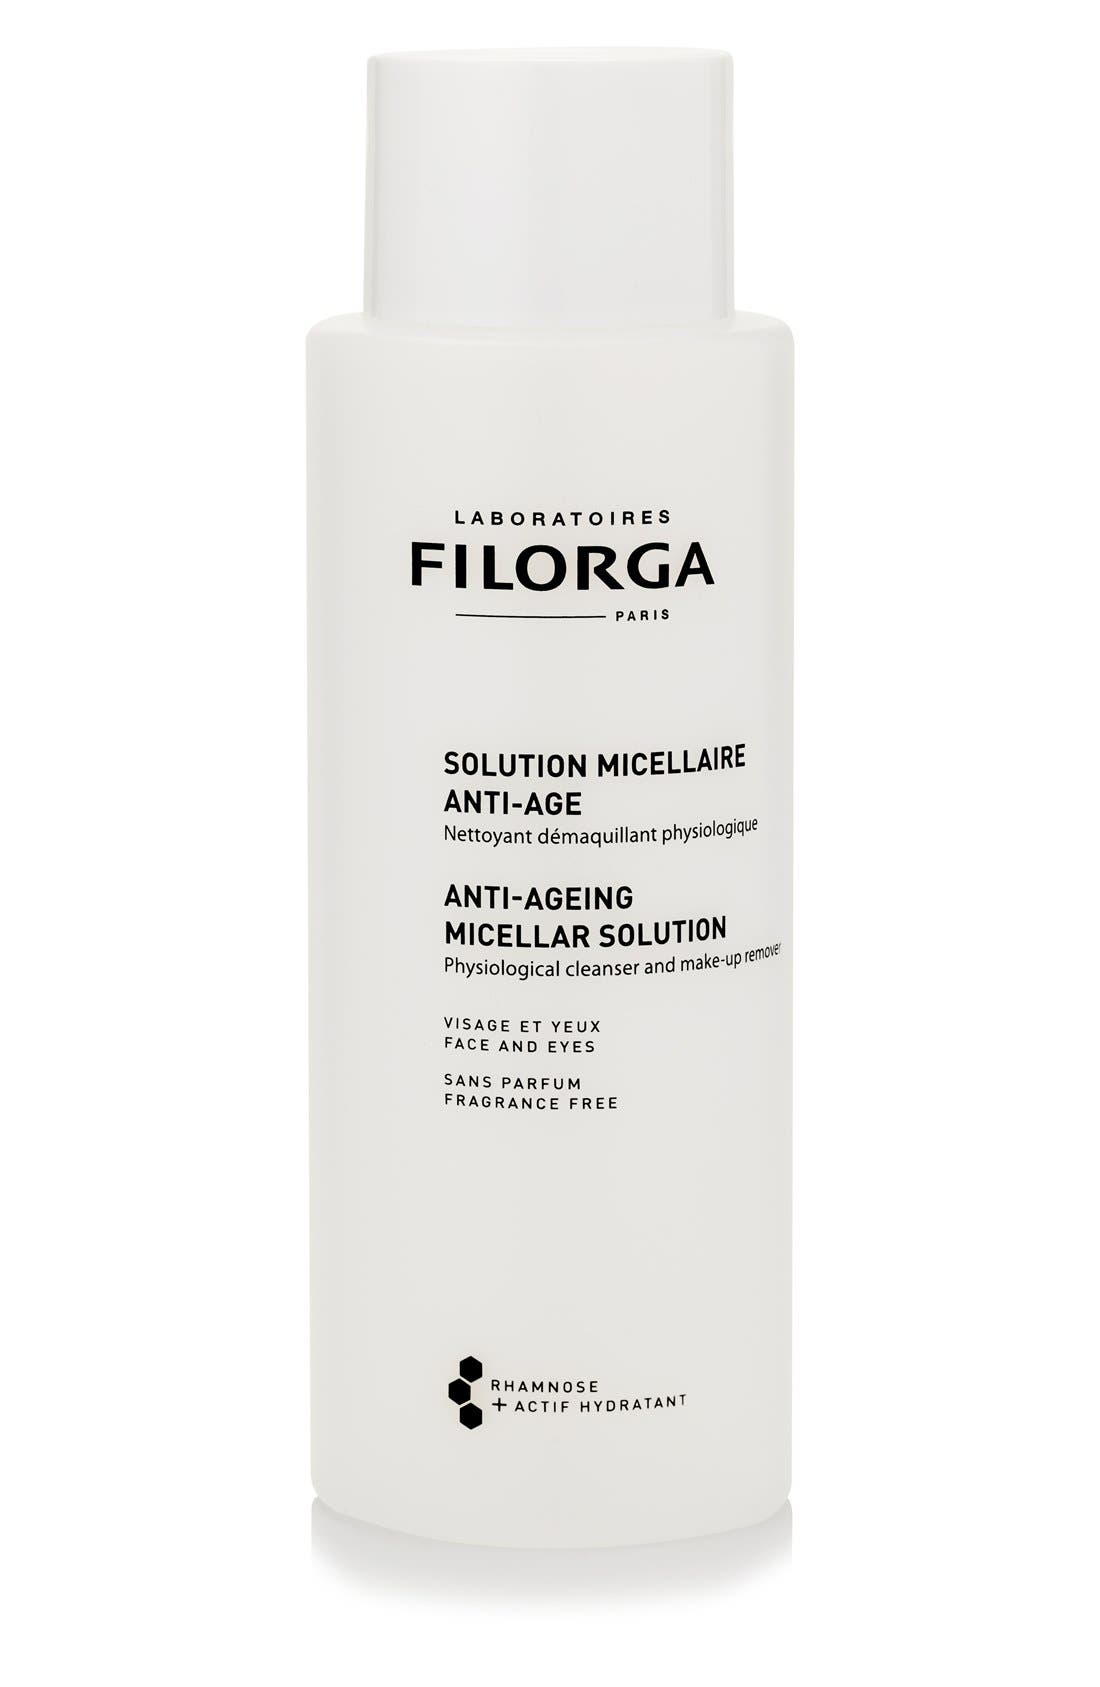 Filorga 'Anti-Aging Micellar Solution' Physiological Cleanser and Makeup Remover